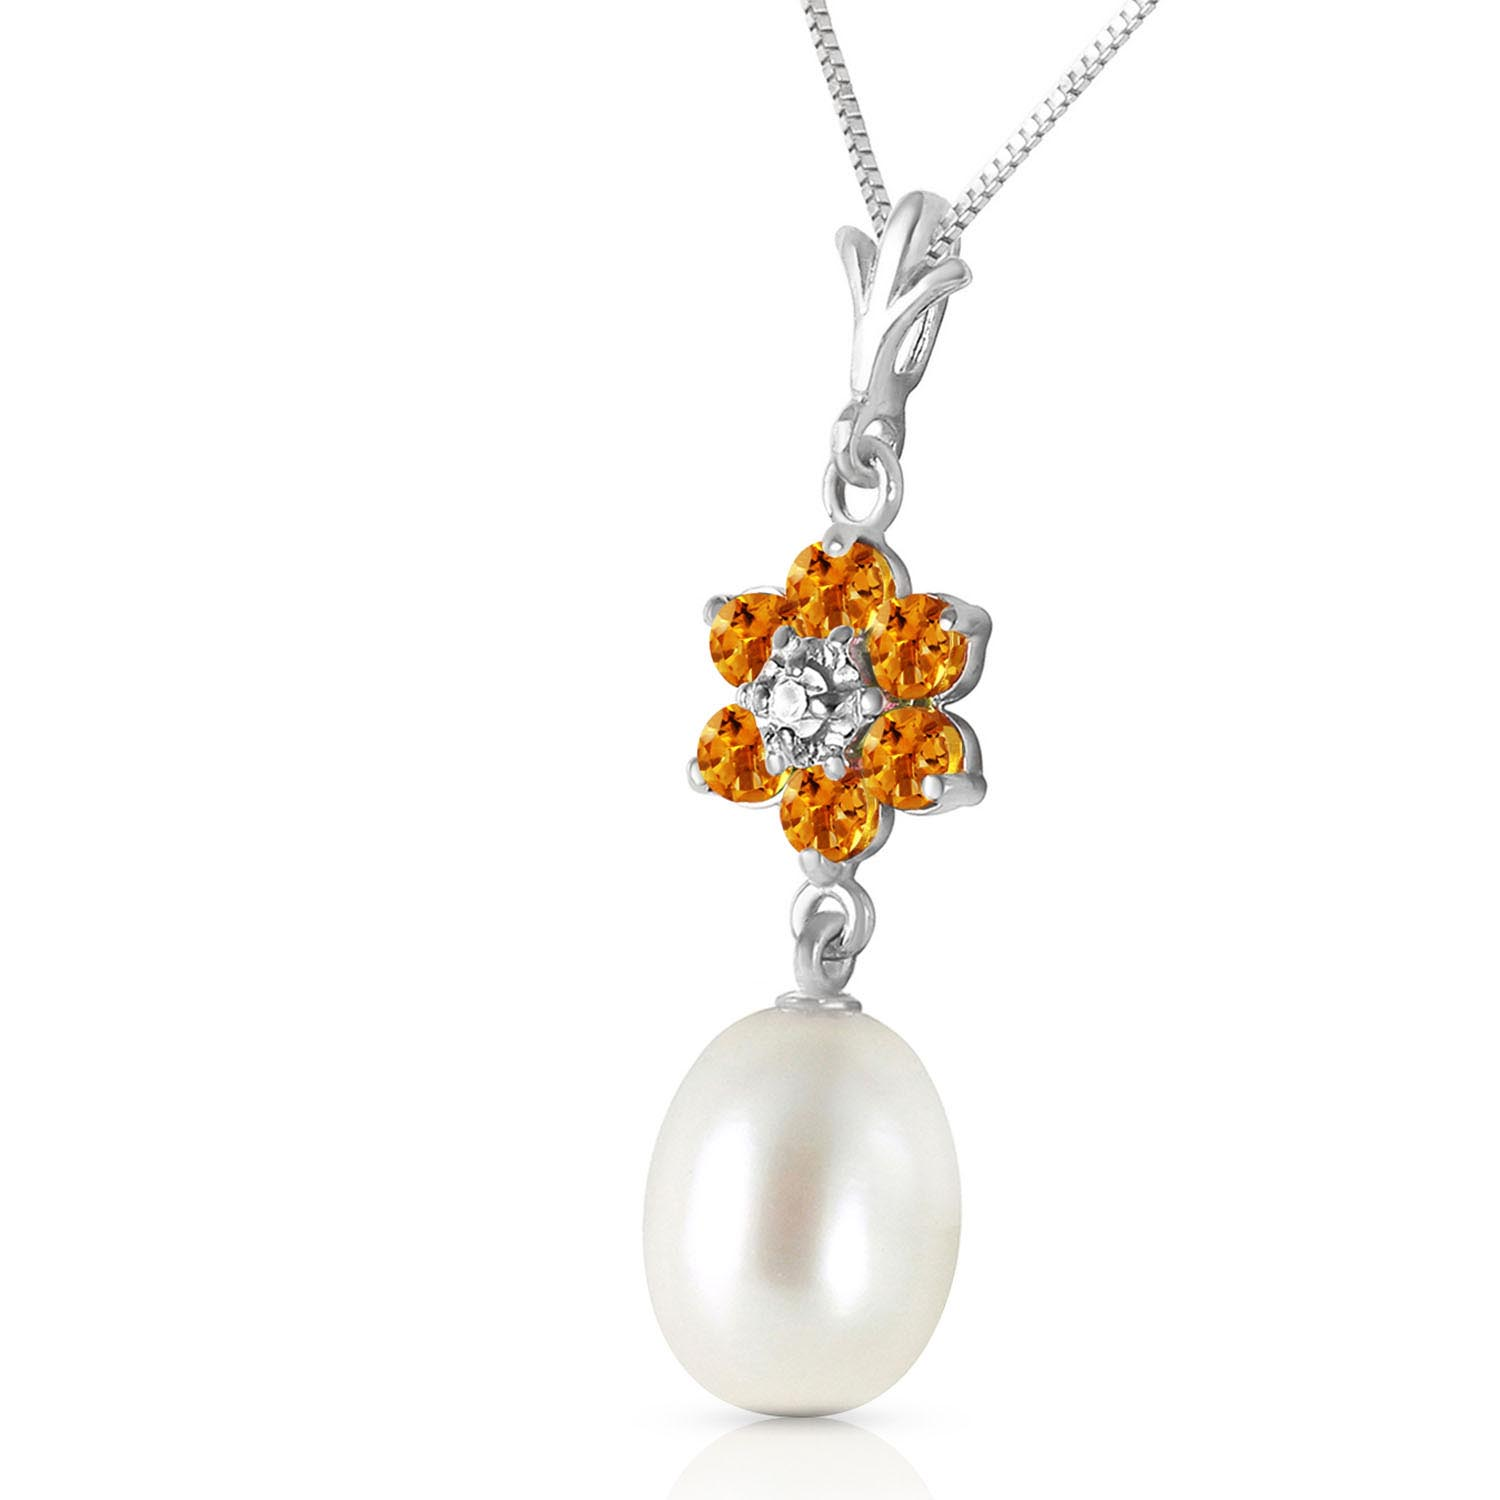 Pearl, Citrine and Diamond Daisy Pendant Necklace 4.5ctw in 9ct White Gold